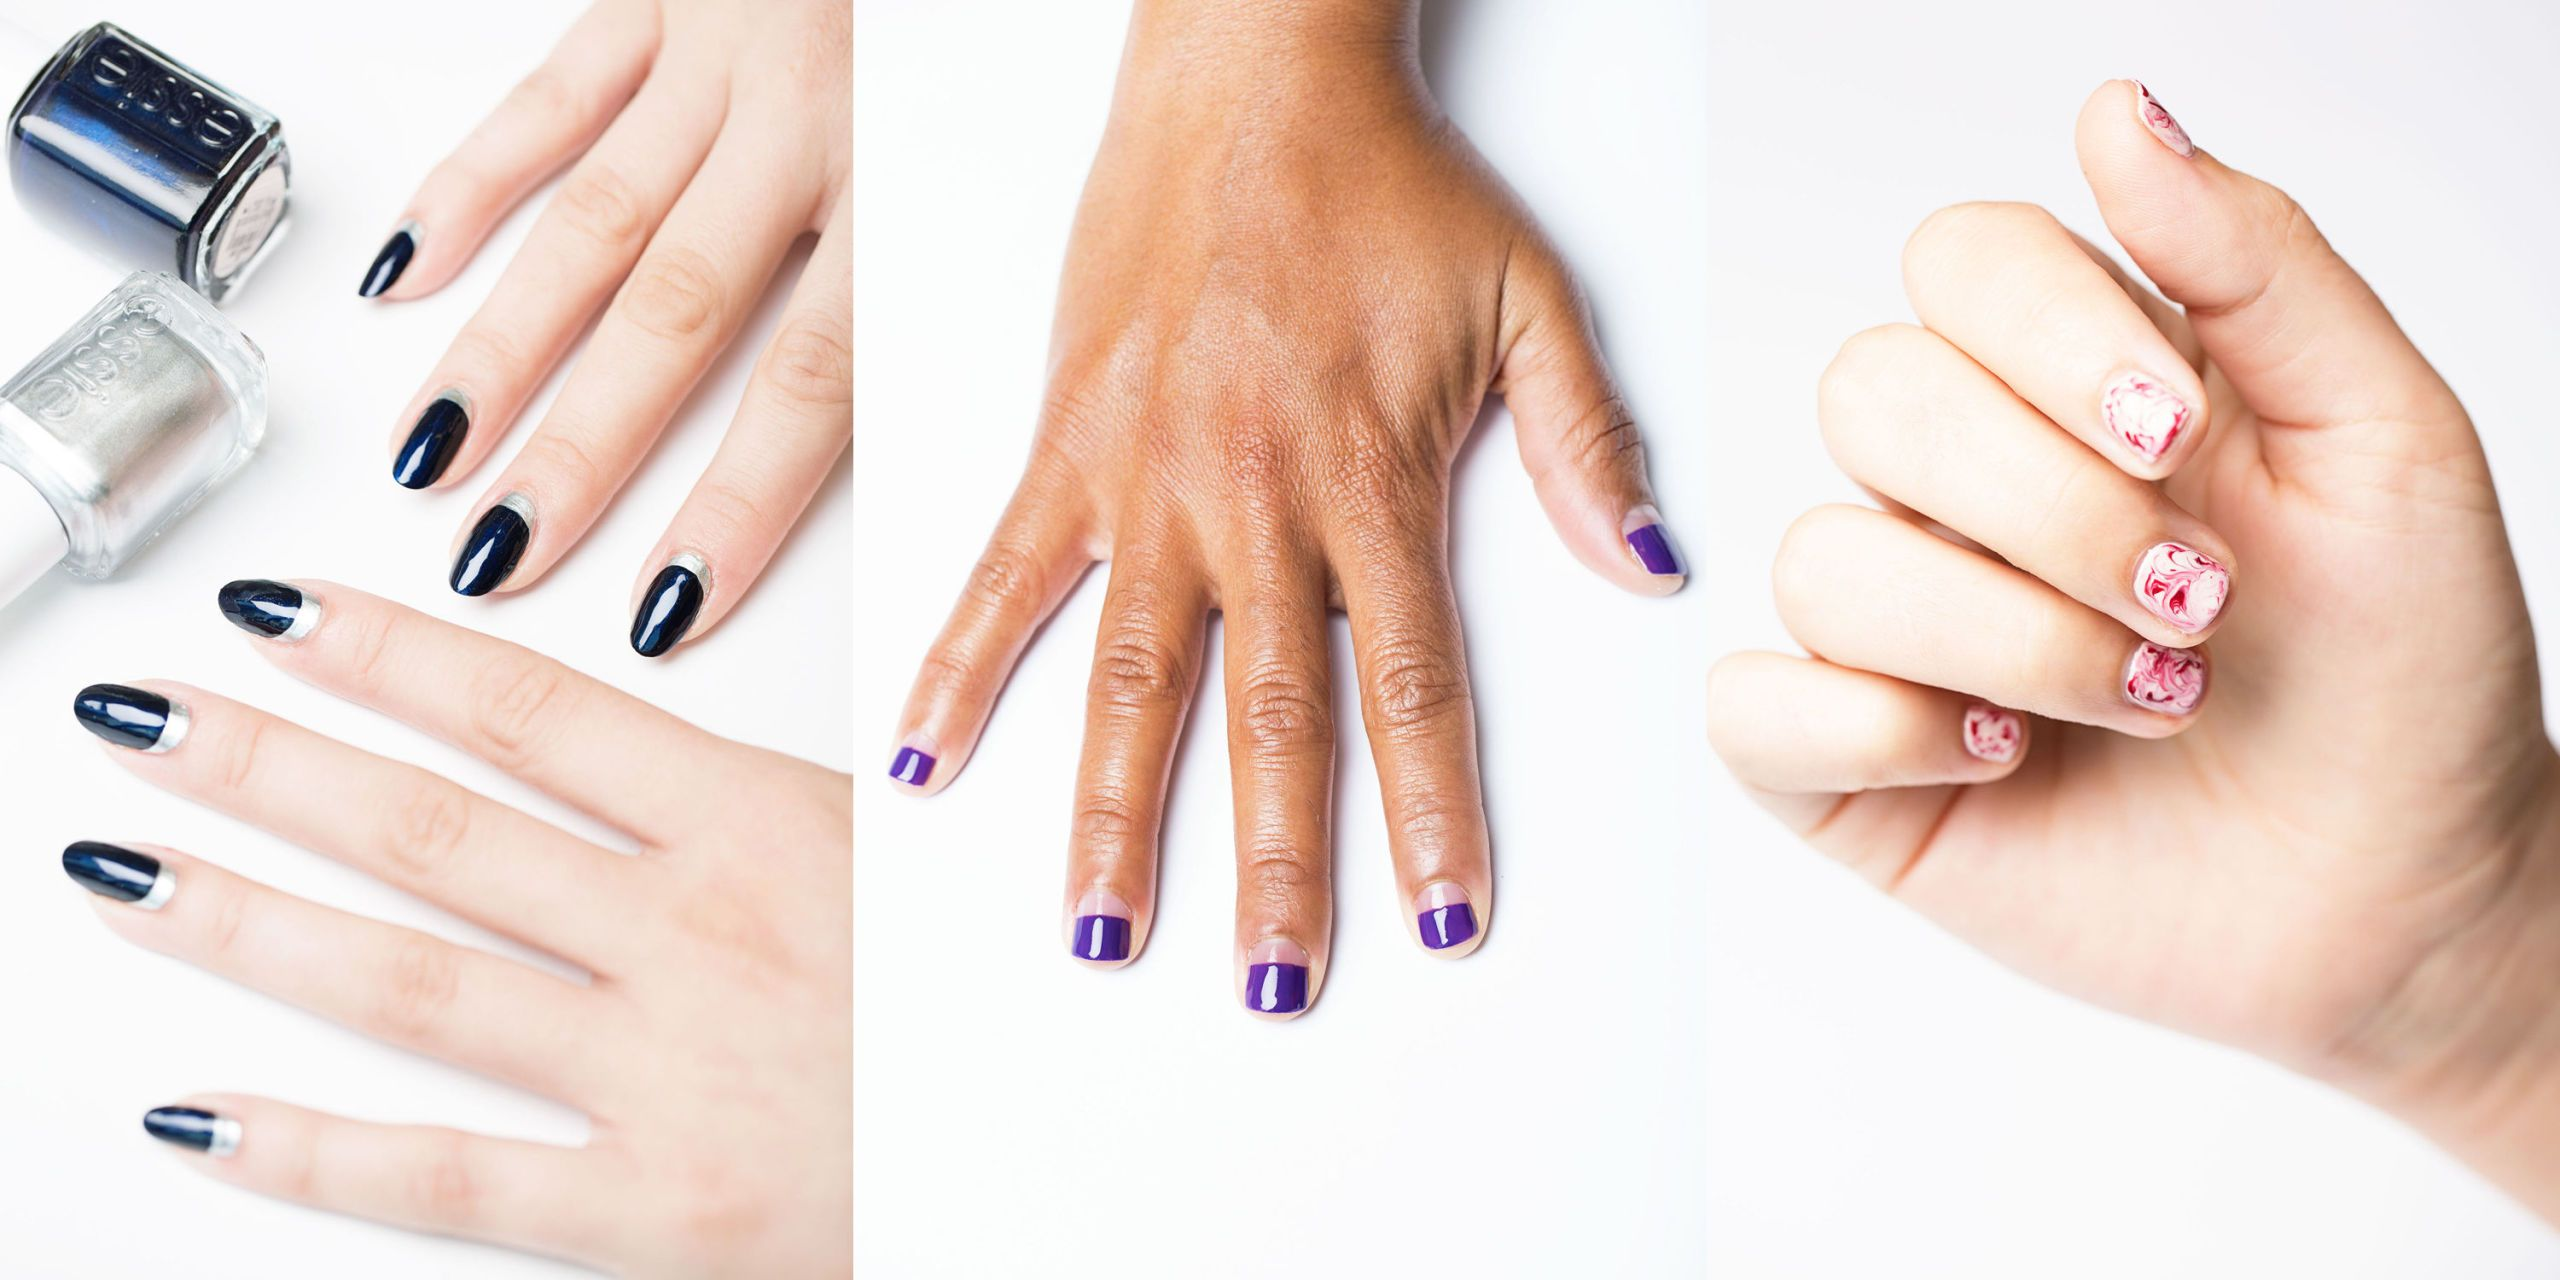 12 Easy Nail Designs , Simple Nail Art Ideas You Can Do Yourself